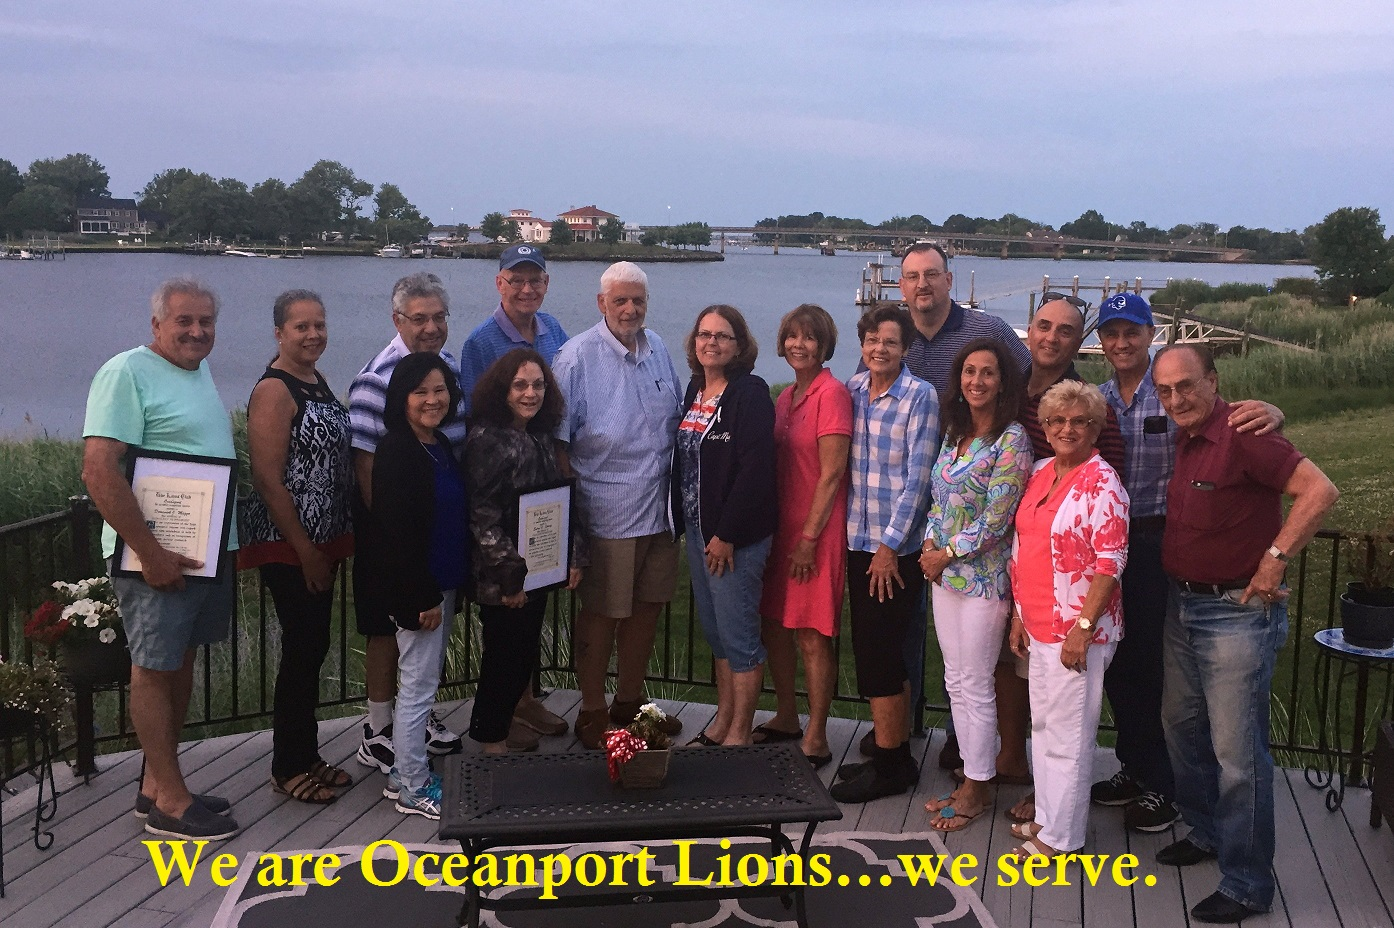 Oceanport Lions Club of NJ